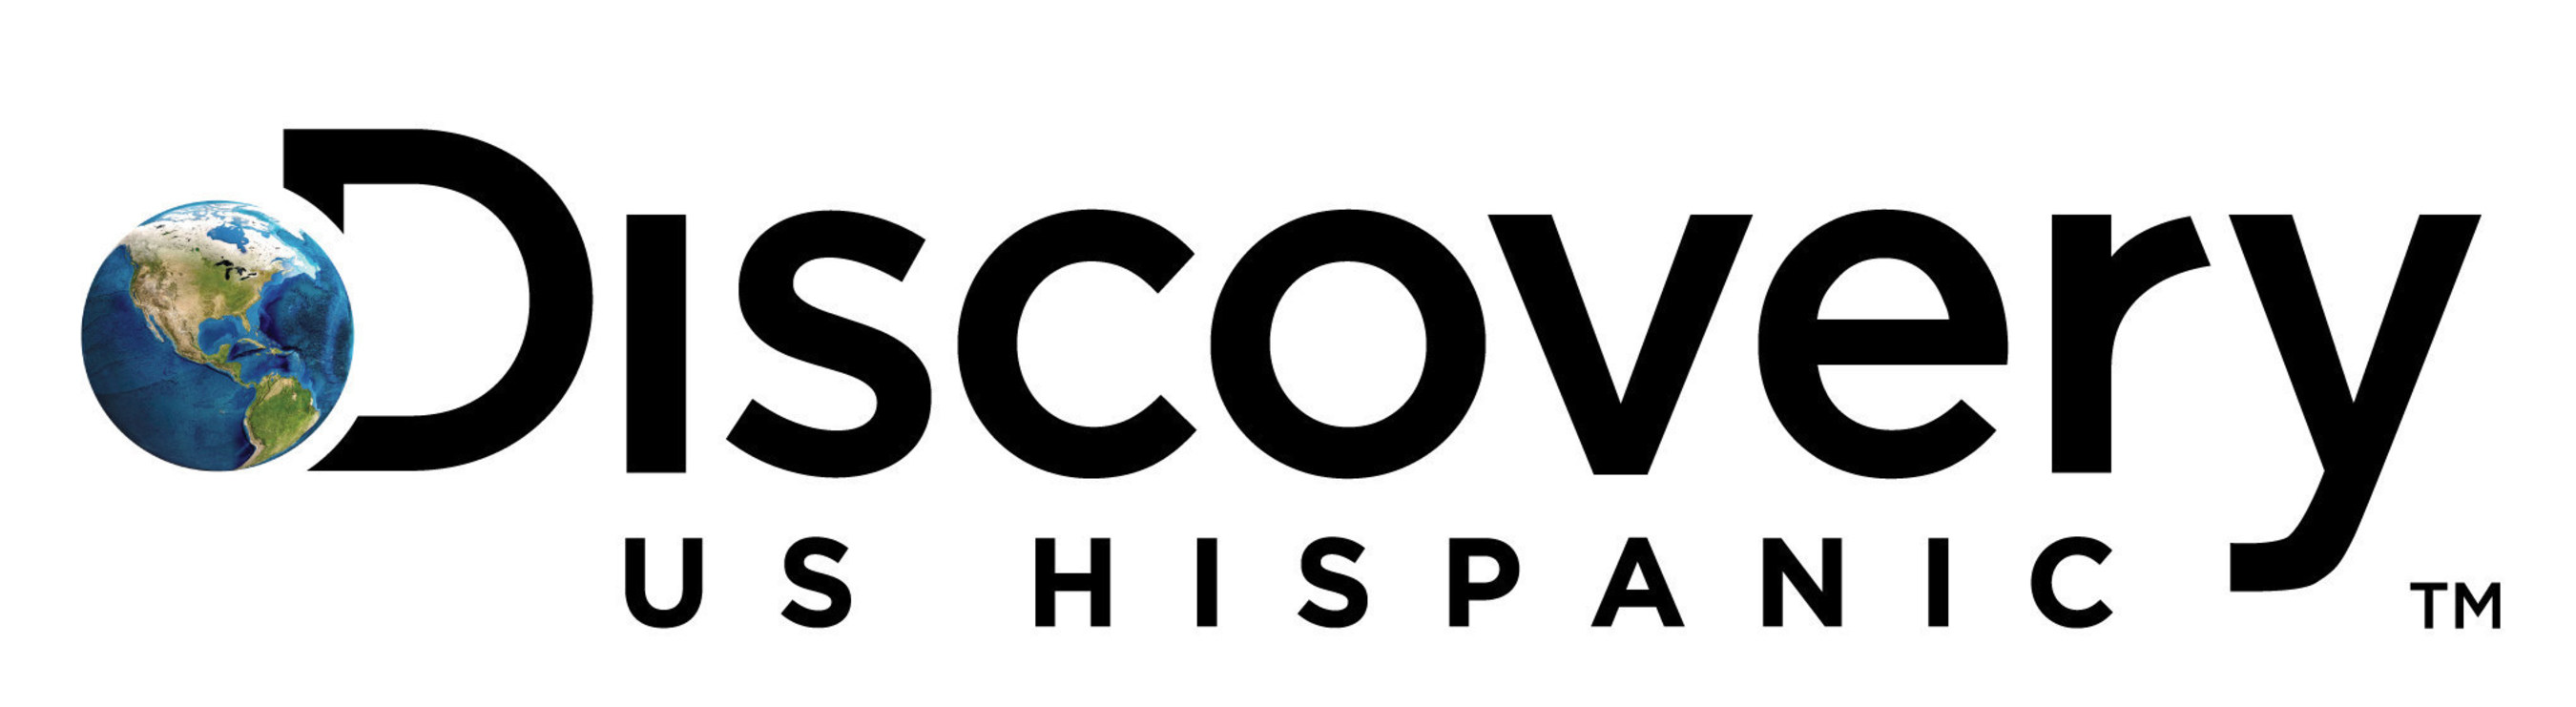 Discovery U.S. Hispanic Networks Announce 2016-2017 Upfront Slate